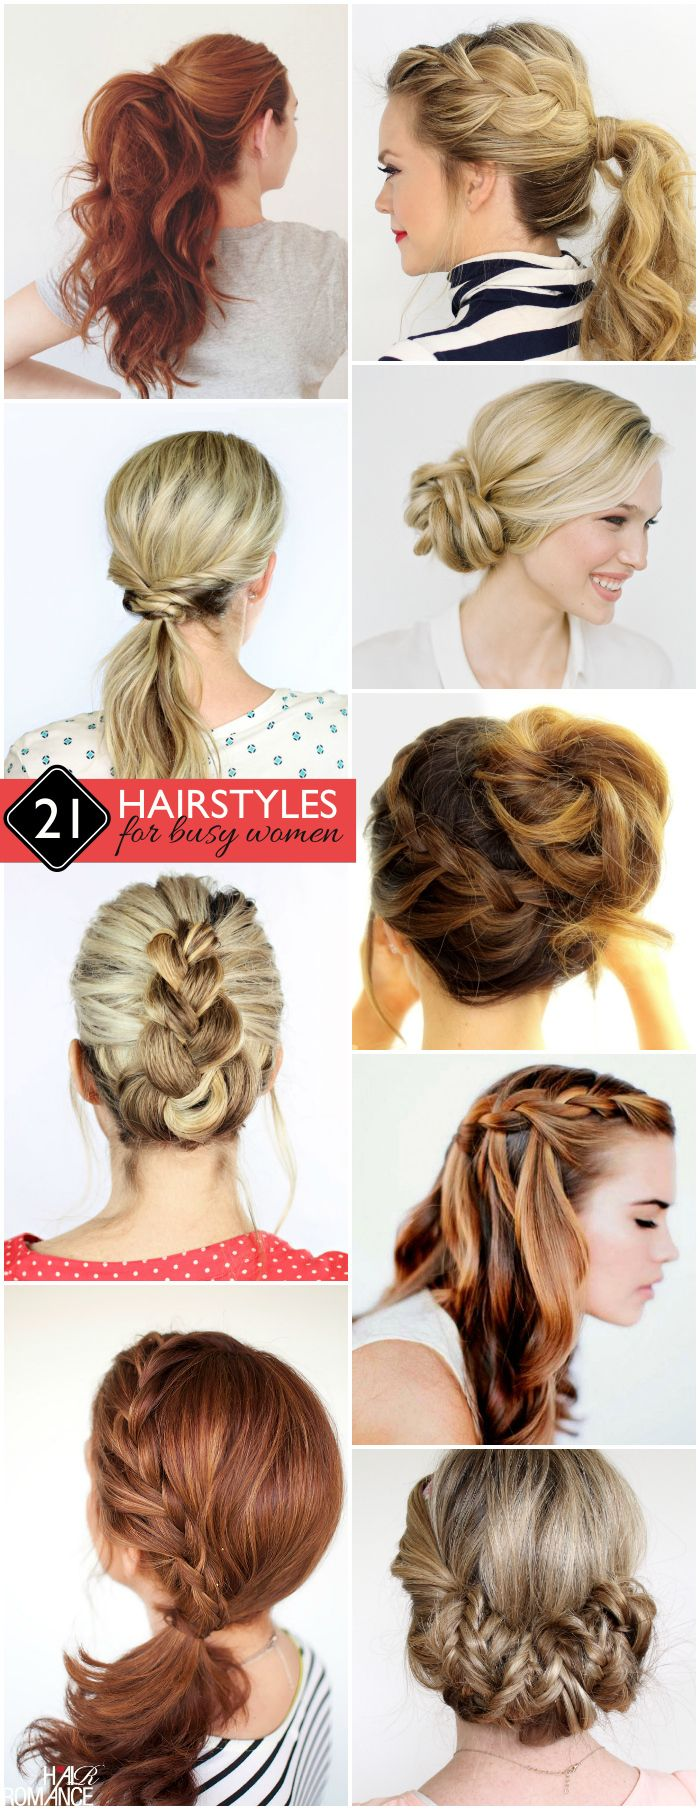 Hairstyles For Busy Women Hair Styles Business Casual Hairstyles Business Hairstyles